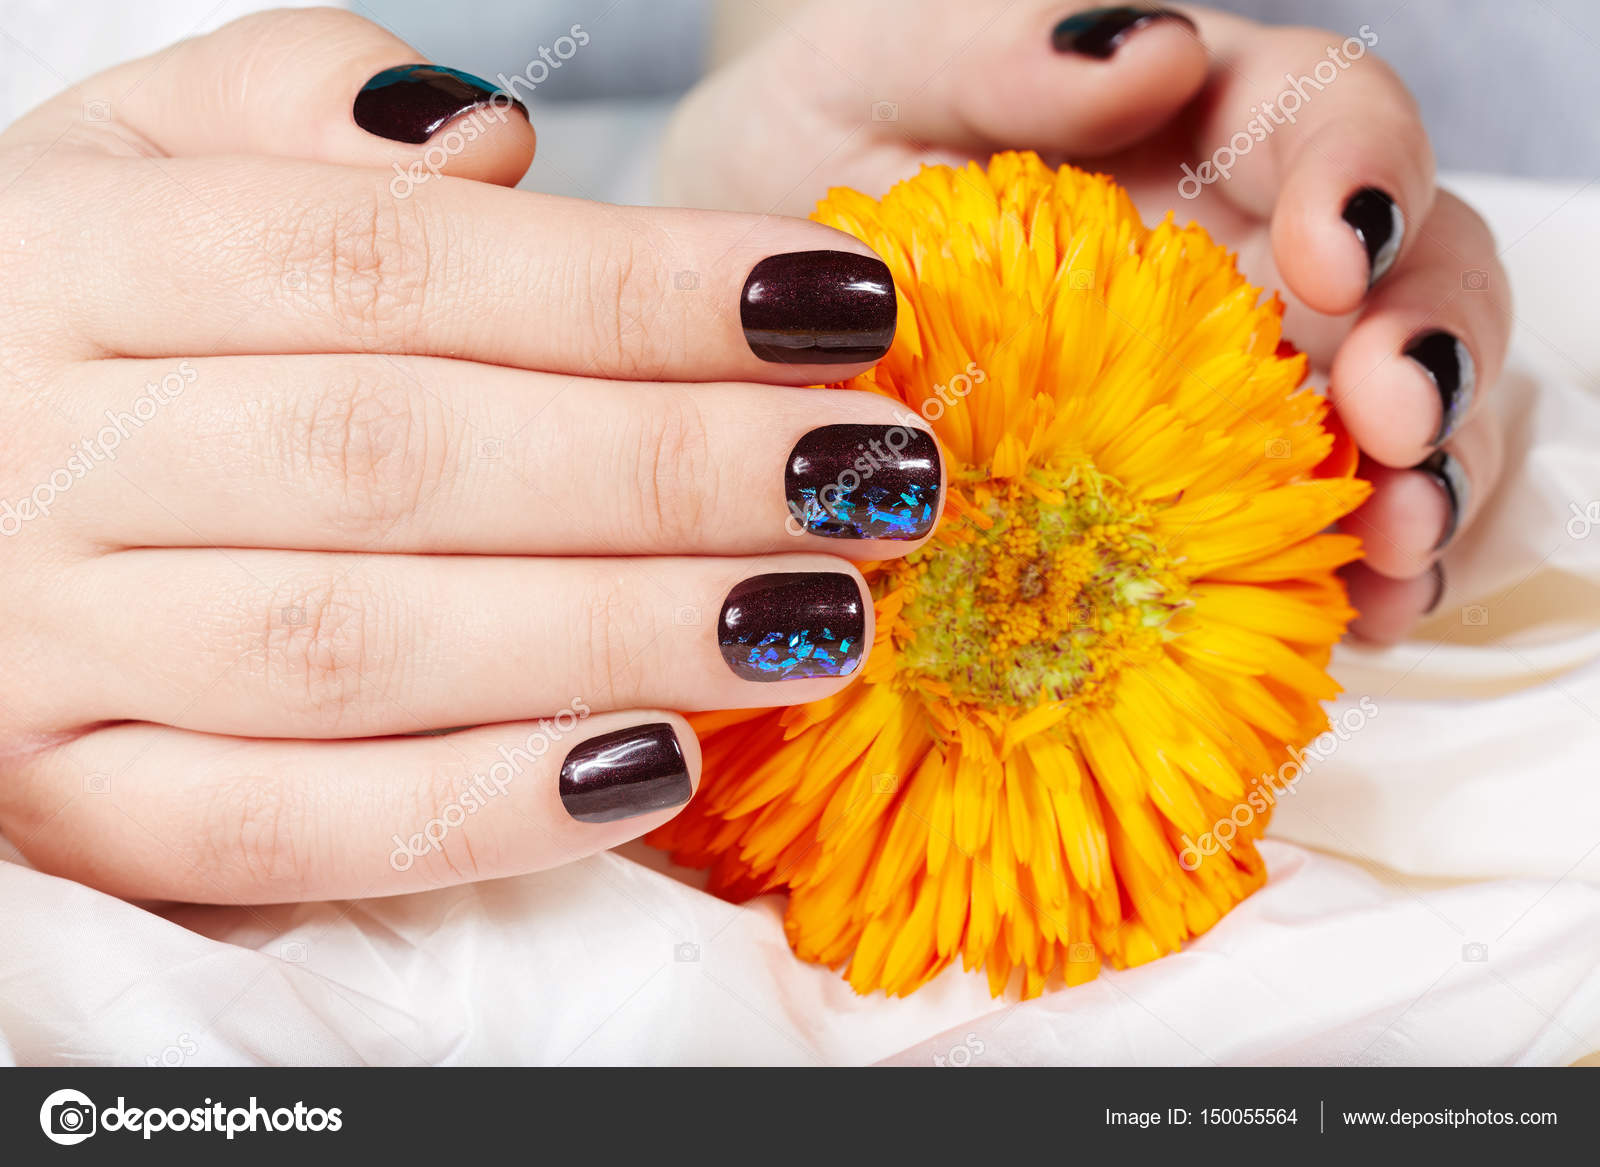 Hands with short manicured nails colored with dark purple nail ...